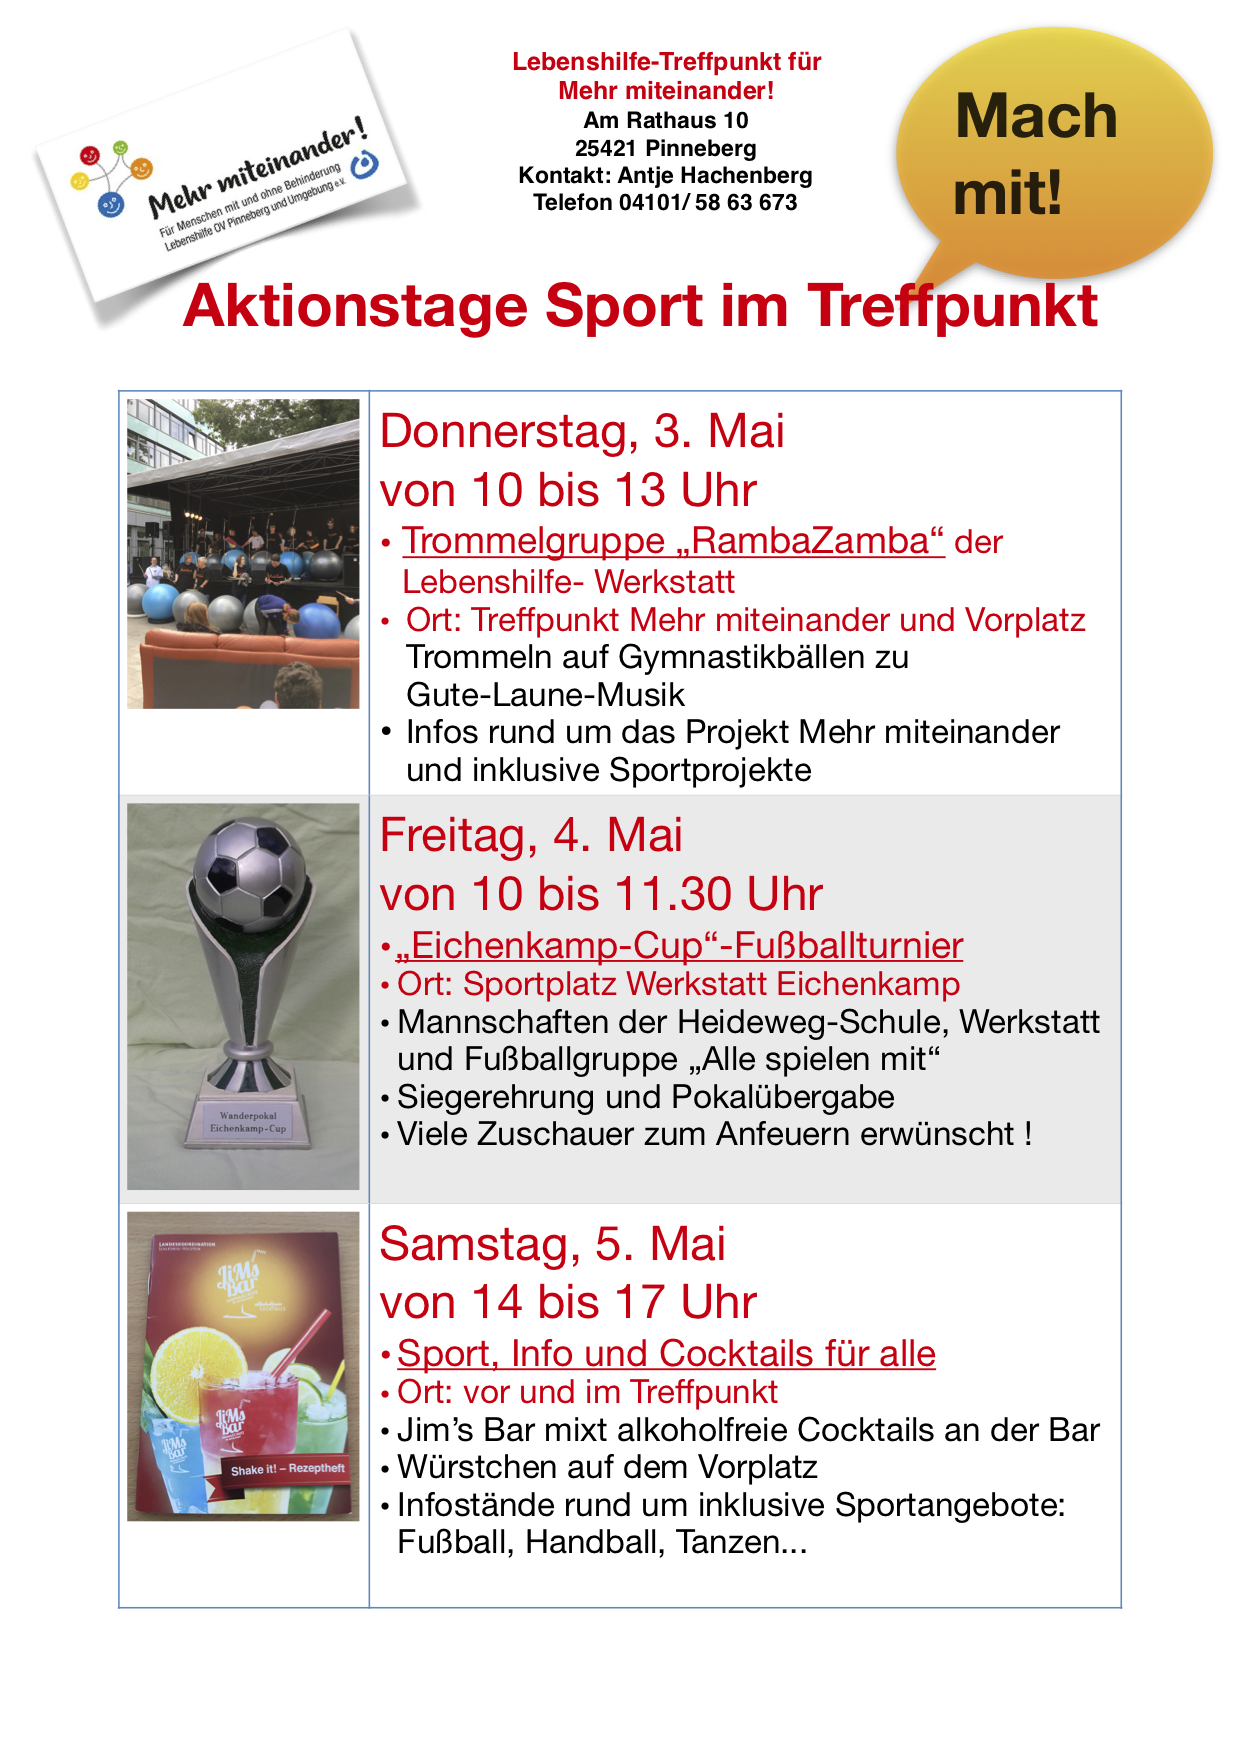 Aktionstage Sport Mai 2018